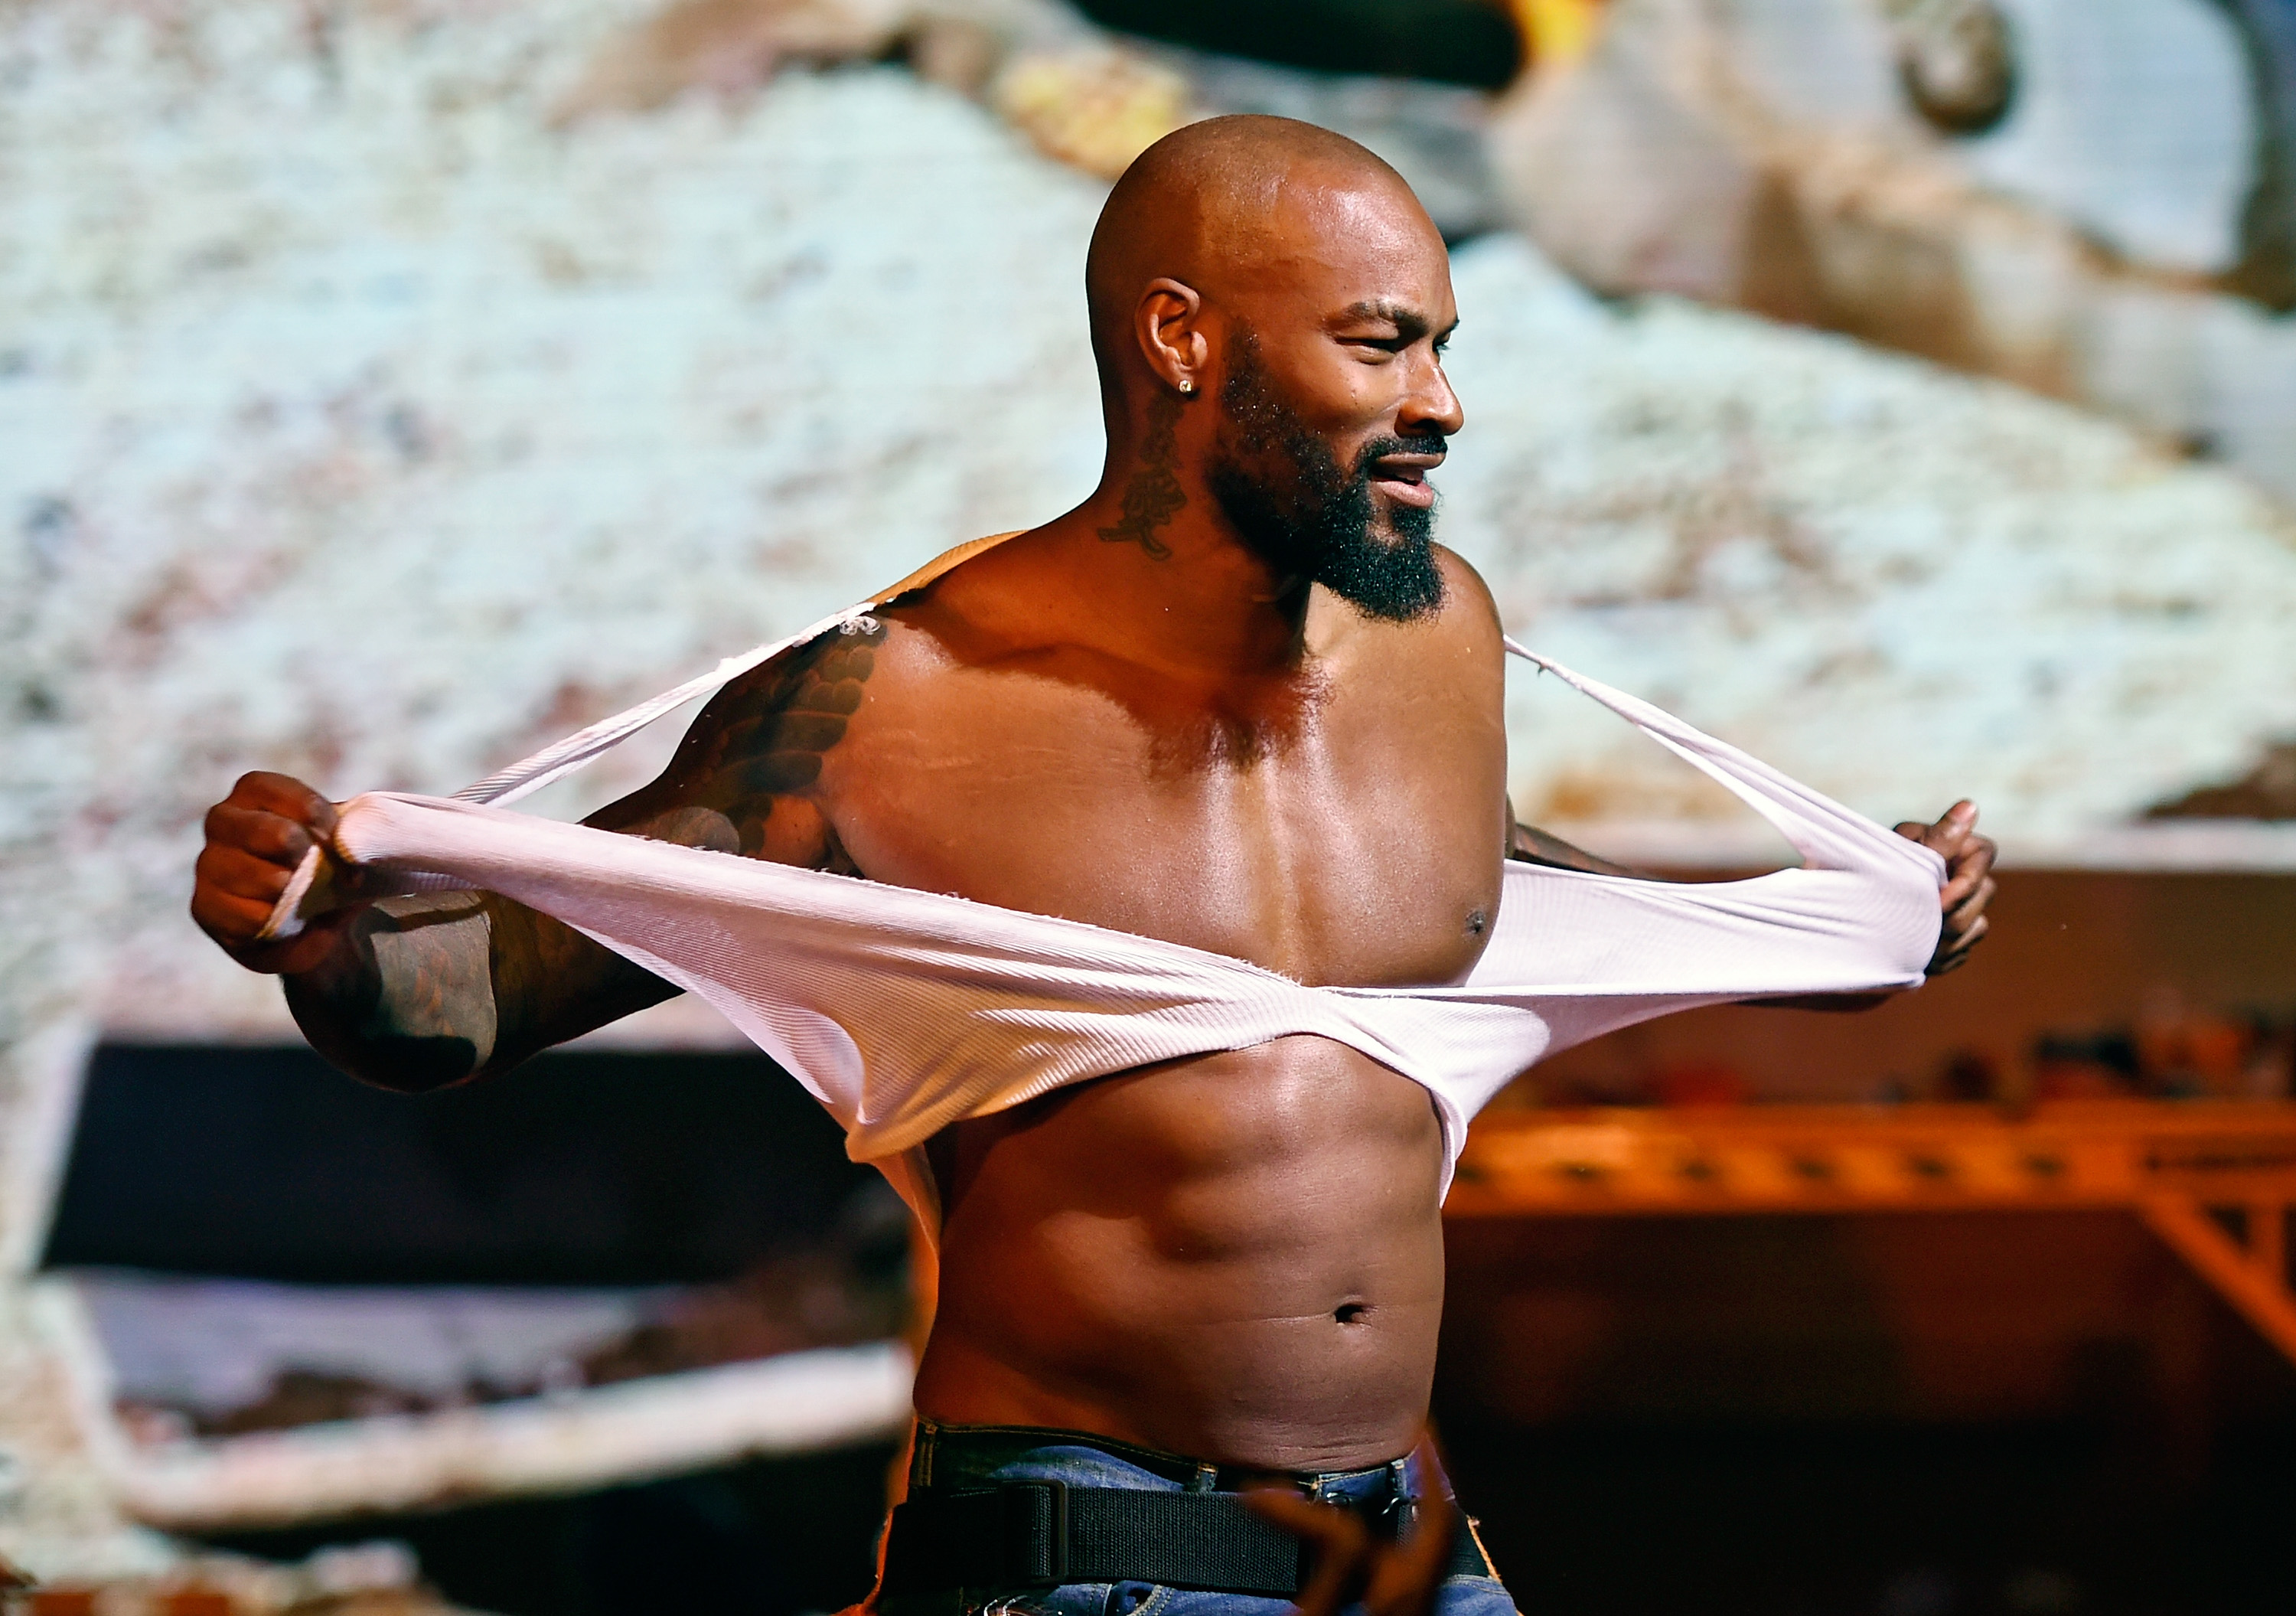 Model Tyson Beckford Begins Celebrity Guest Host In Residency With The Chippendales At The Rio In Las Vegas